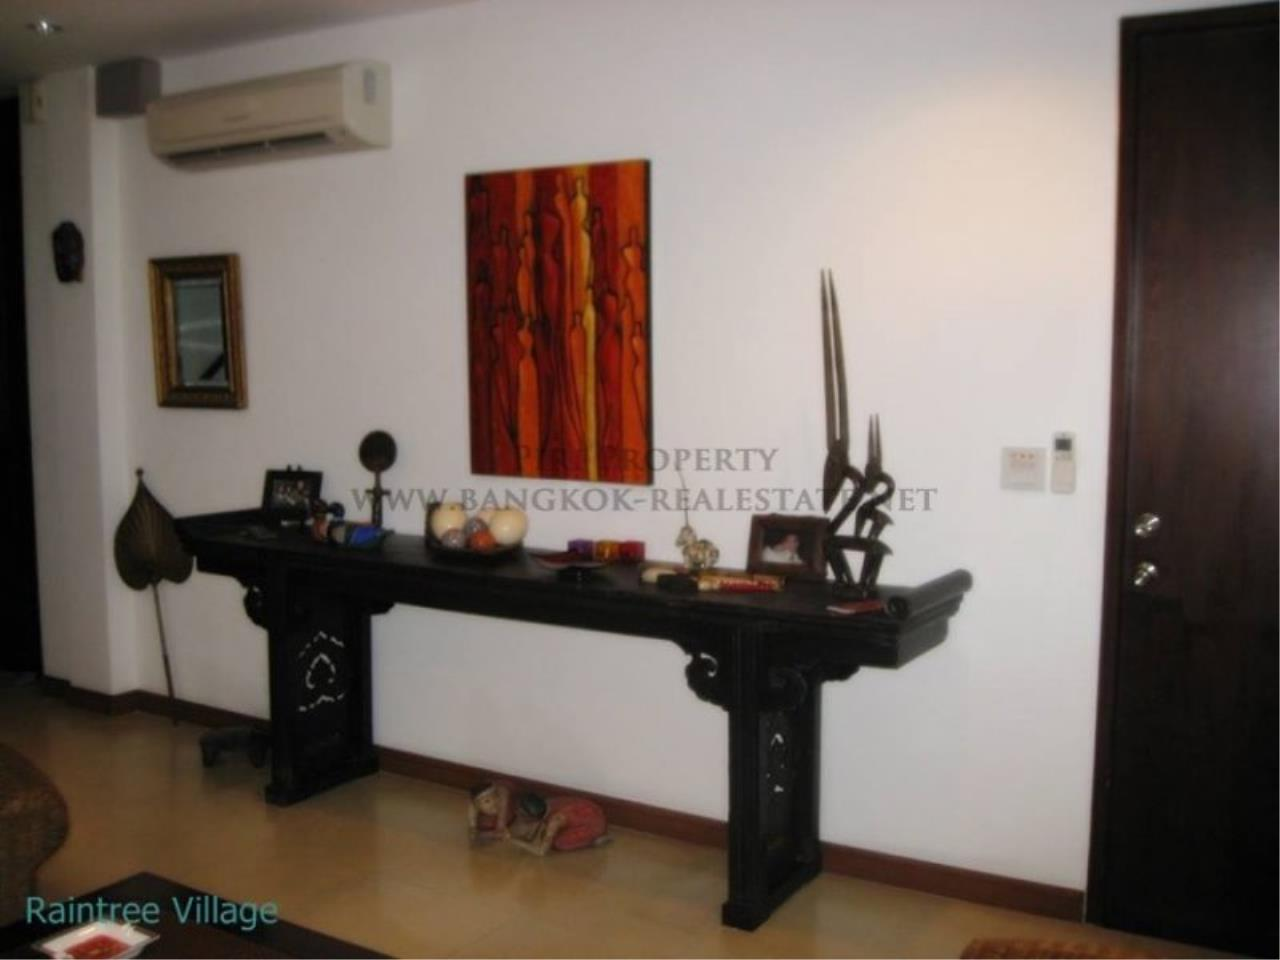 Piri Property Agency's Townhouse Apartment nearby Emporium for Rent - 3 plus 1 Bedroom 2